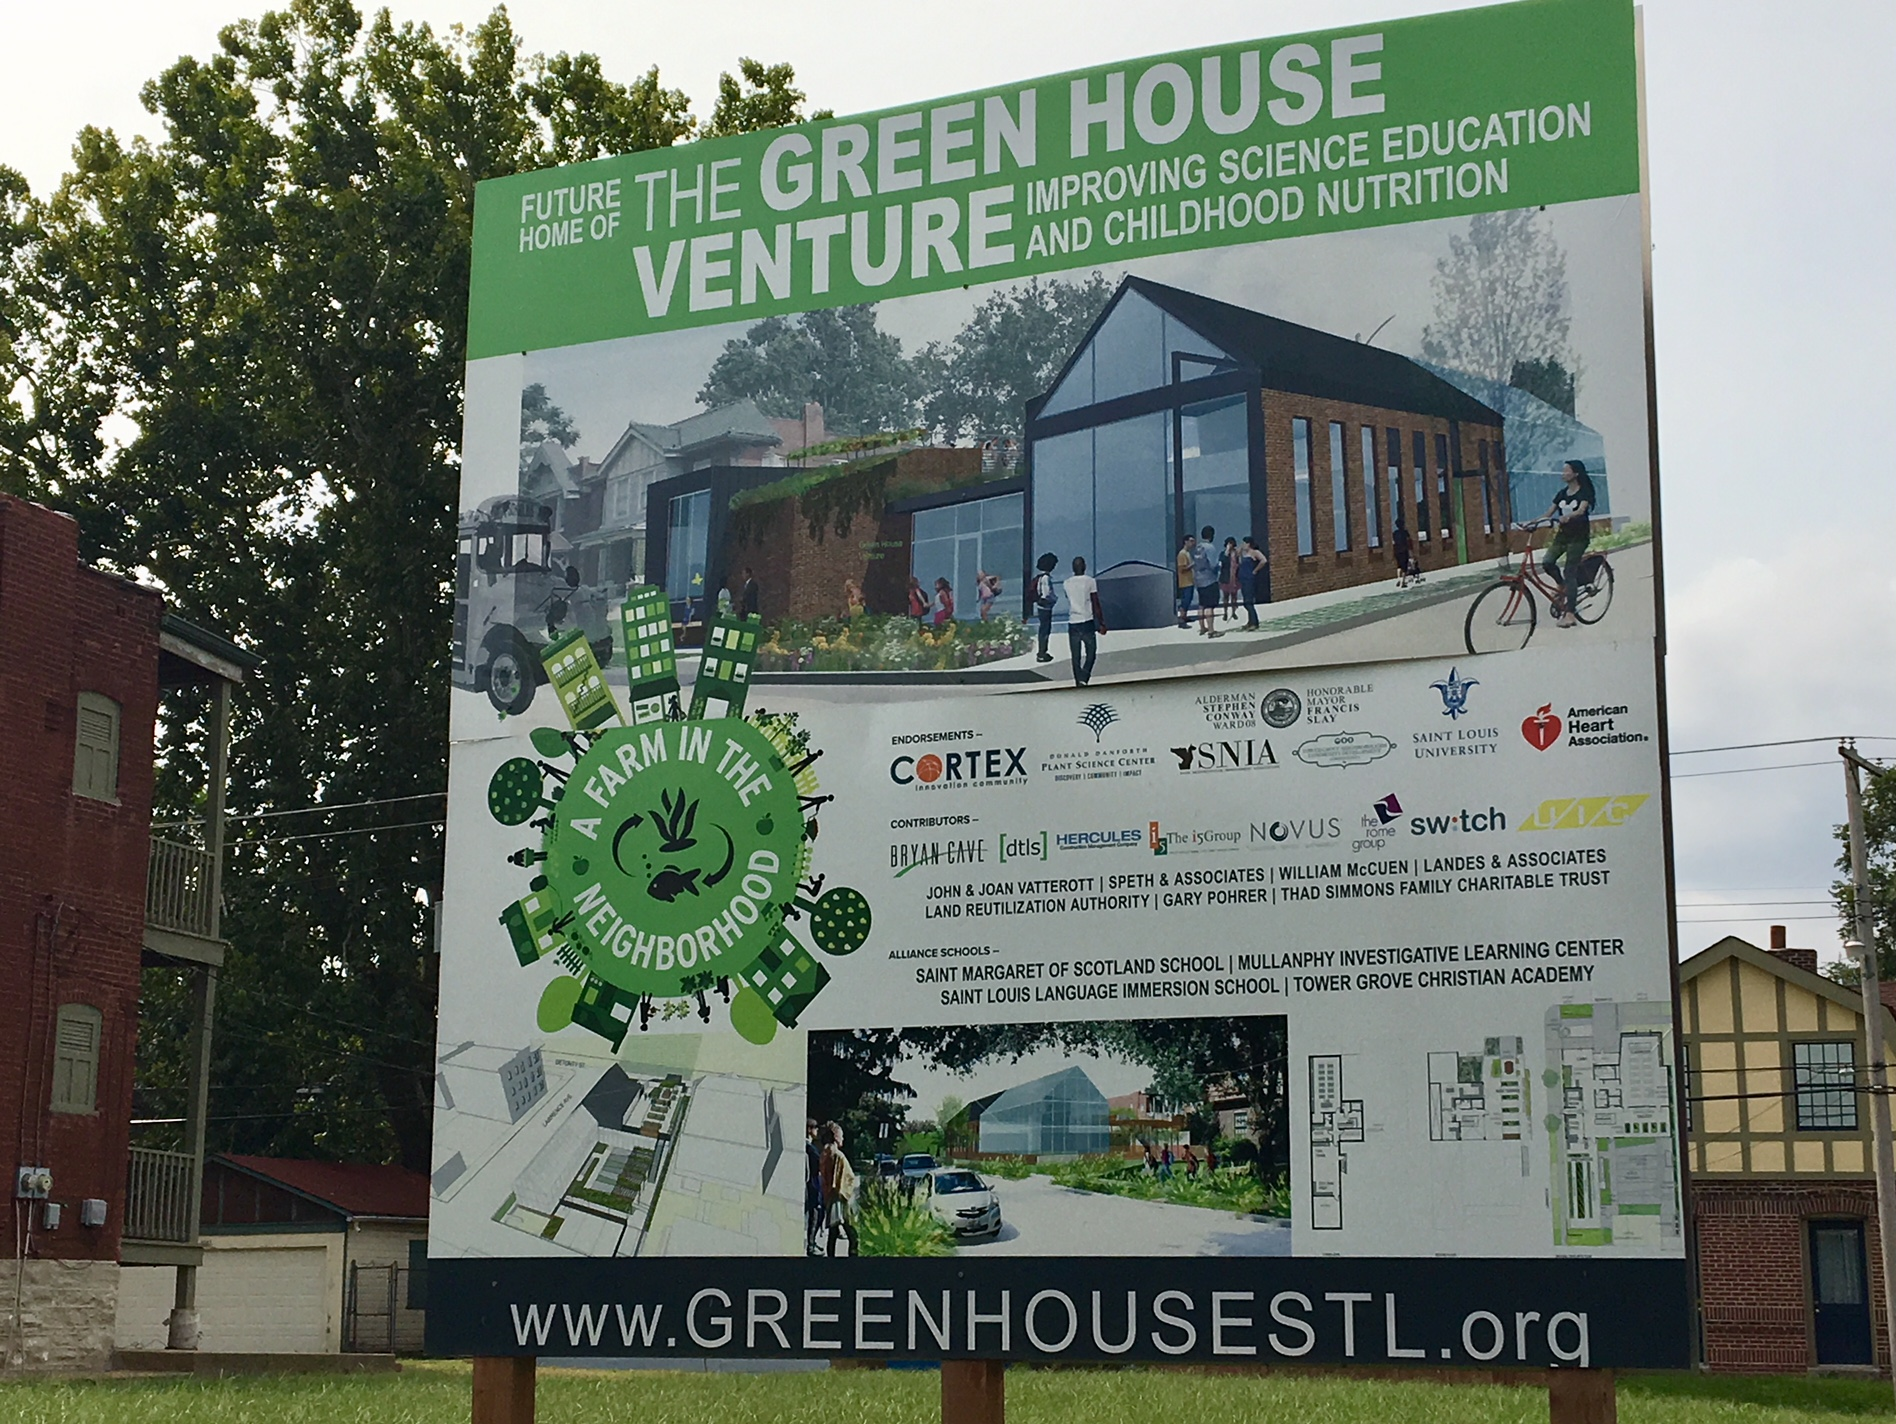 Greenhouse Venture Lot Sign.jpg